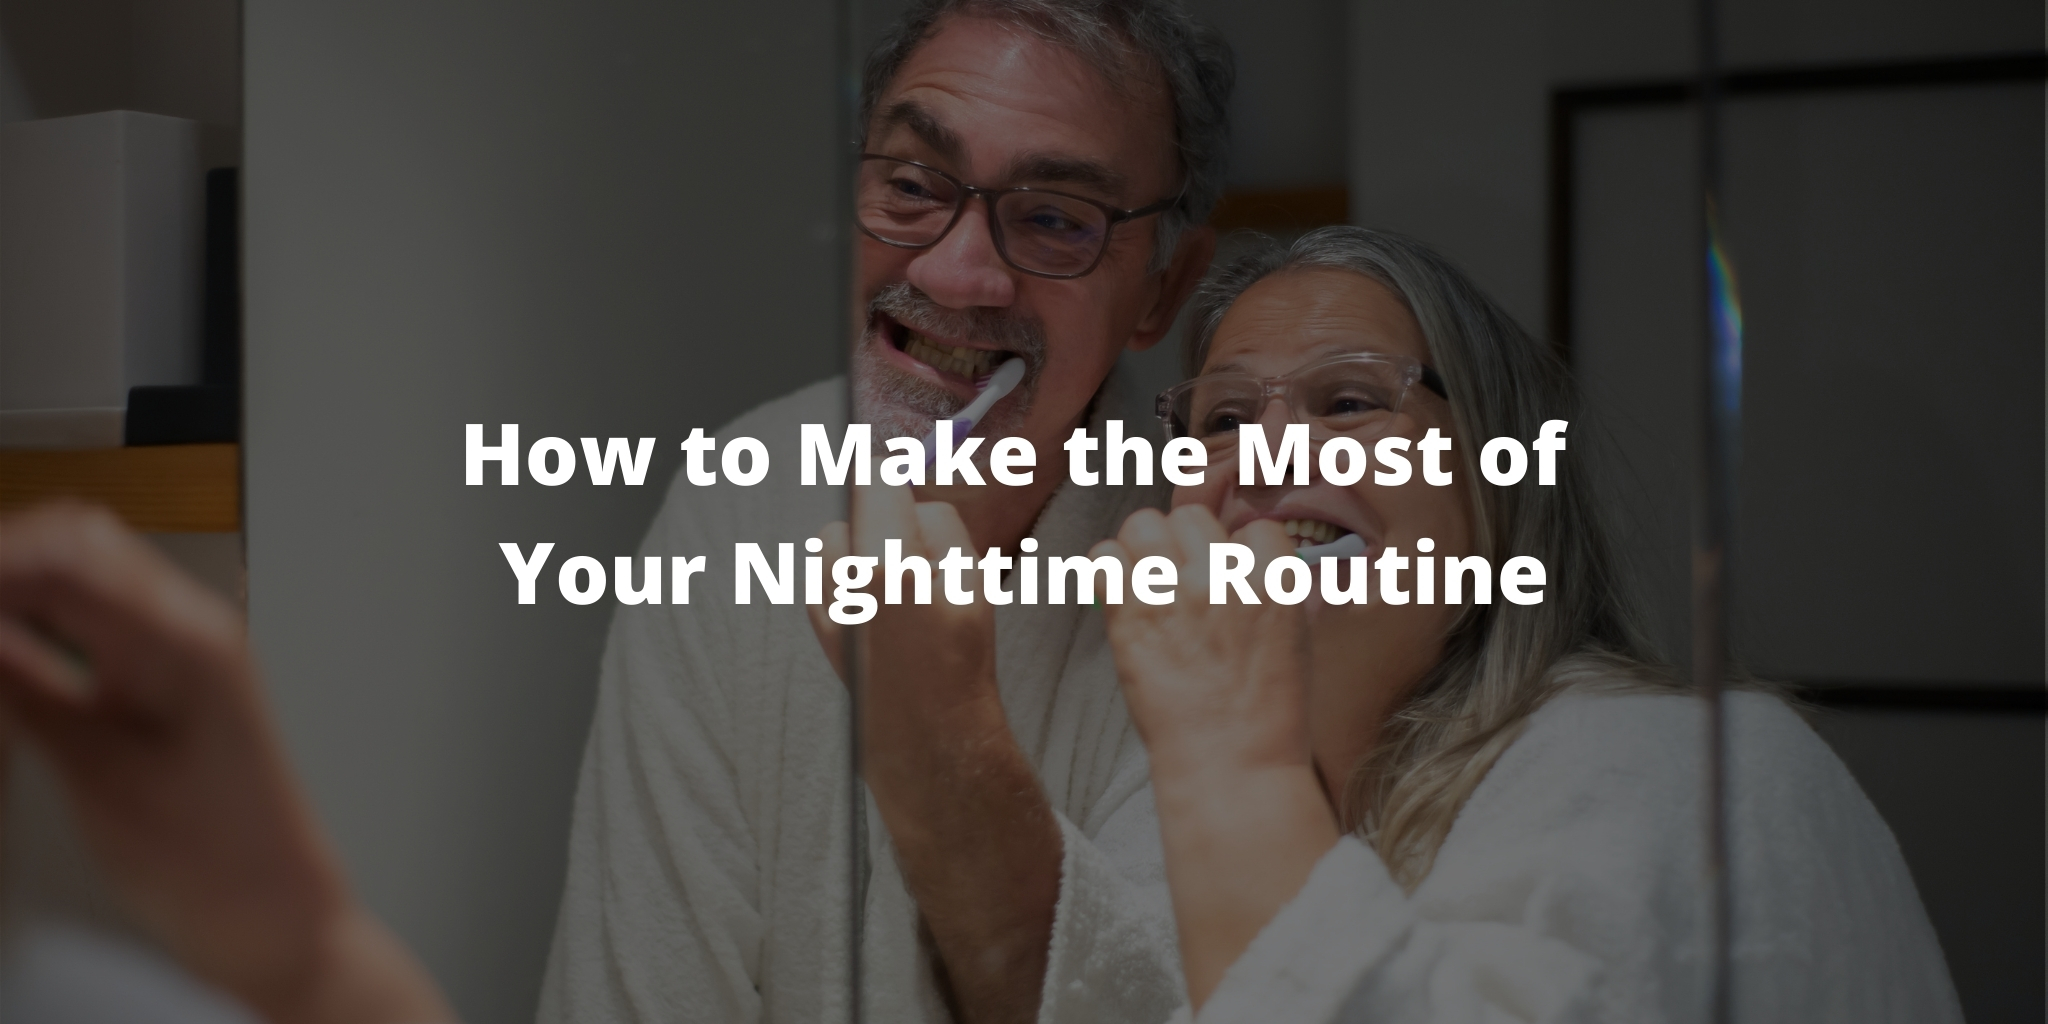 How to Make the Most of Your Nighttime Routine